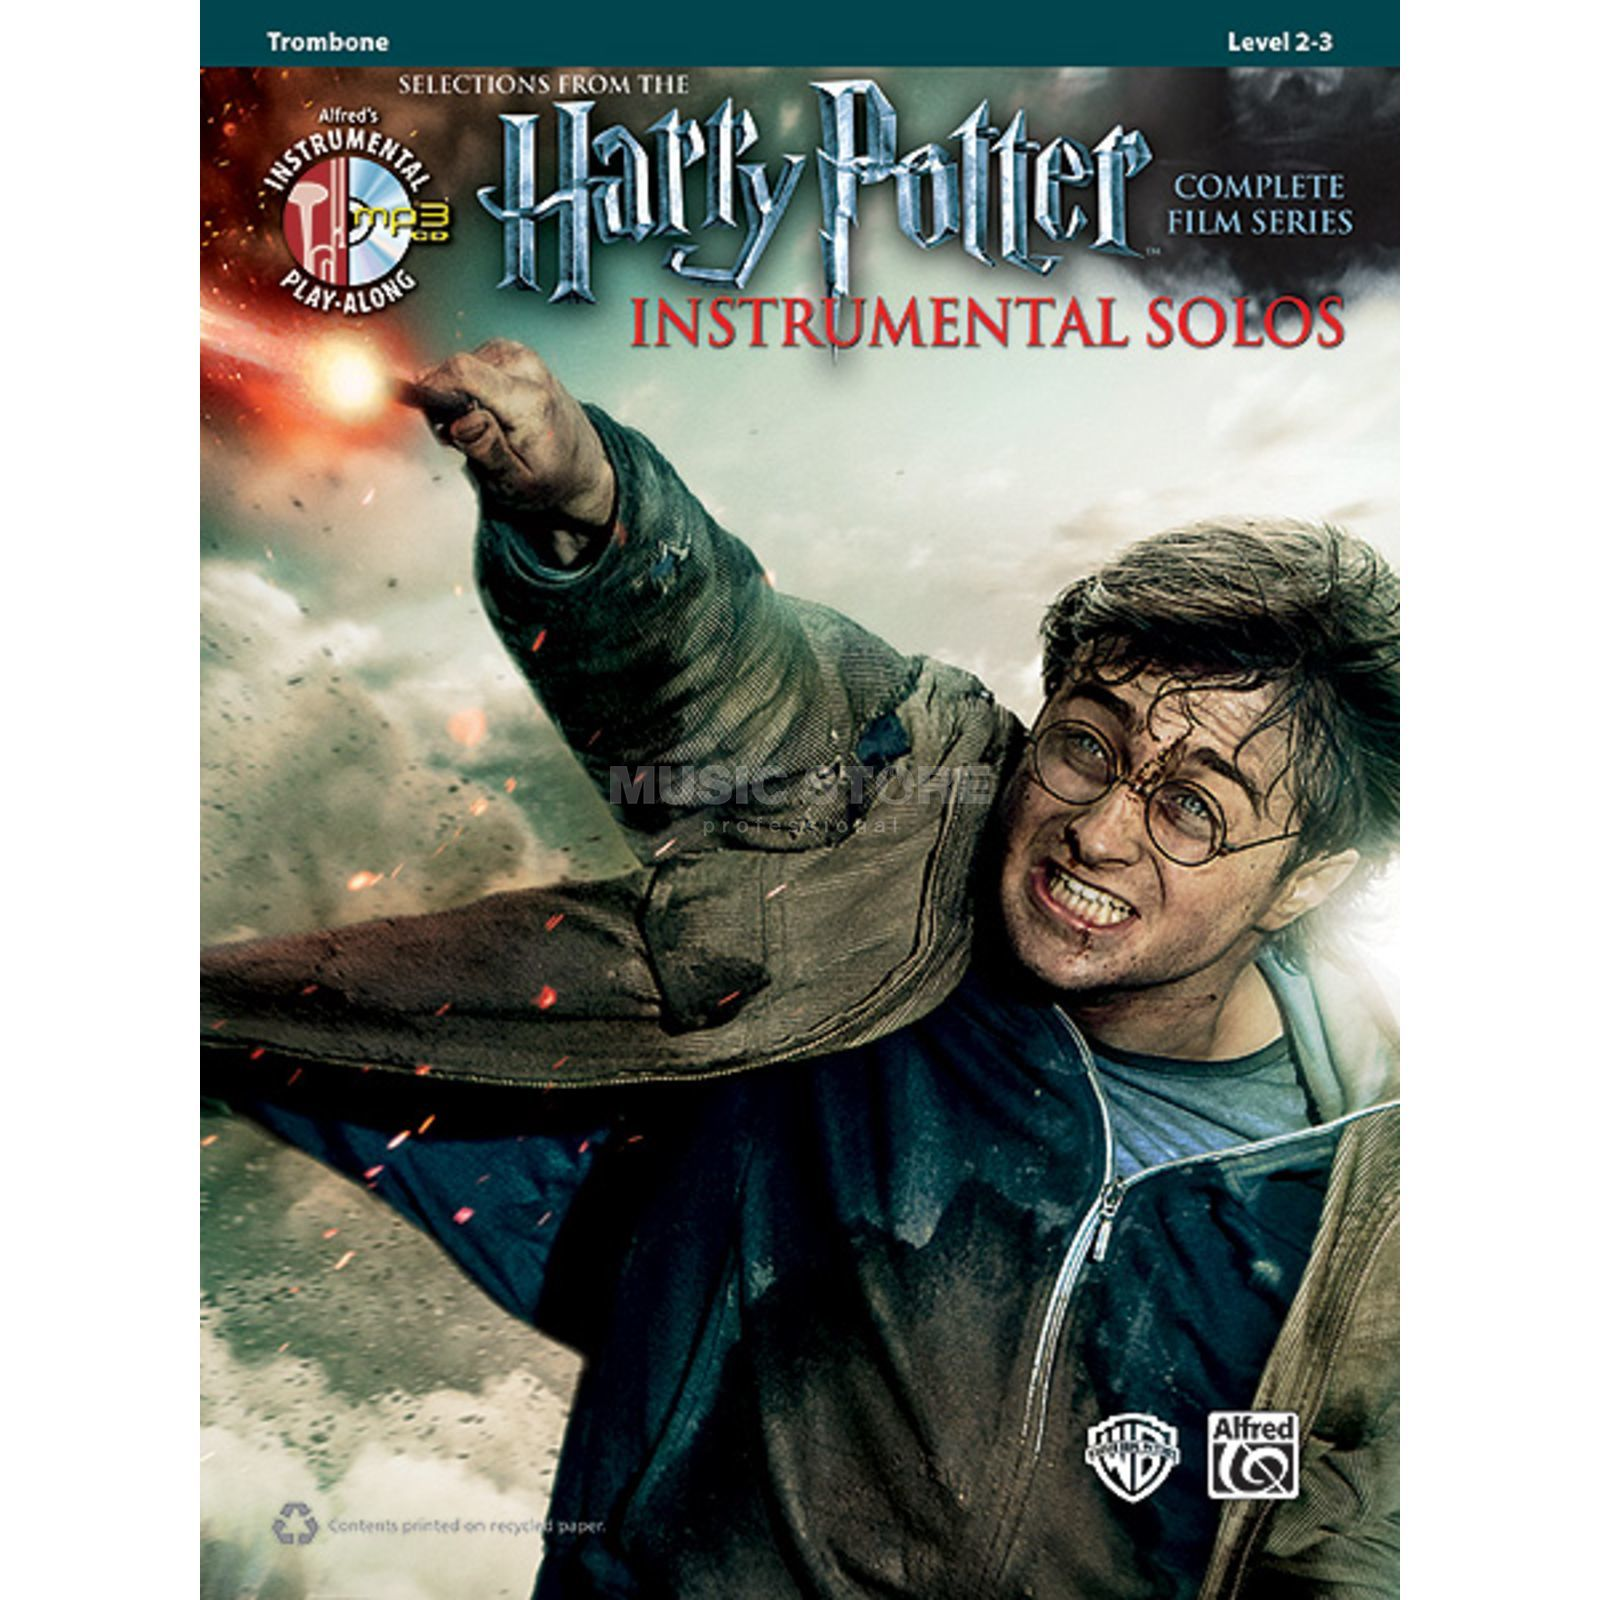 Alfred Music Harry Potter - Trombone Instrumental Solos, Book/CD Produktbillede